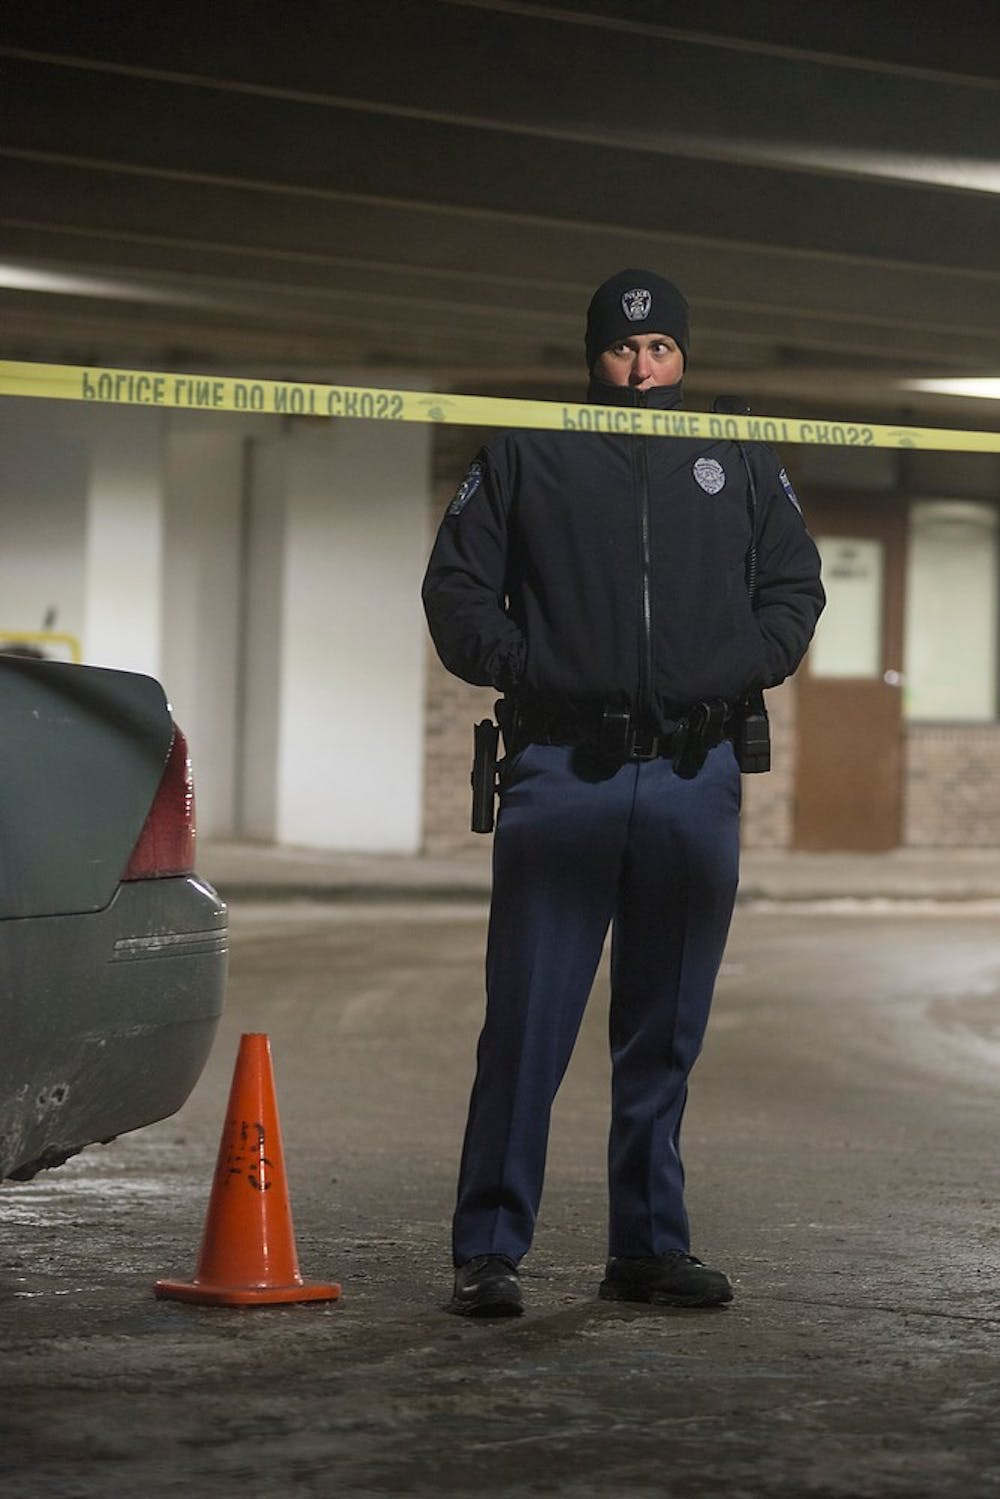 <p>Police units arrive at the scene on Feb. 6, 2015, at the Grove Ramp where a shooting occurred just after midnight. Police had cordoned off the ramp at all entrances, in addition to the entrance to the apartments next door. Emily Nagle/The State News</p>